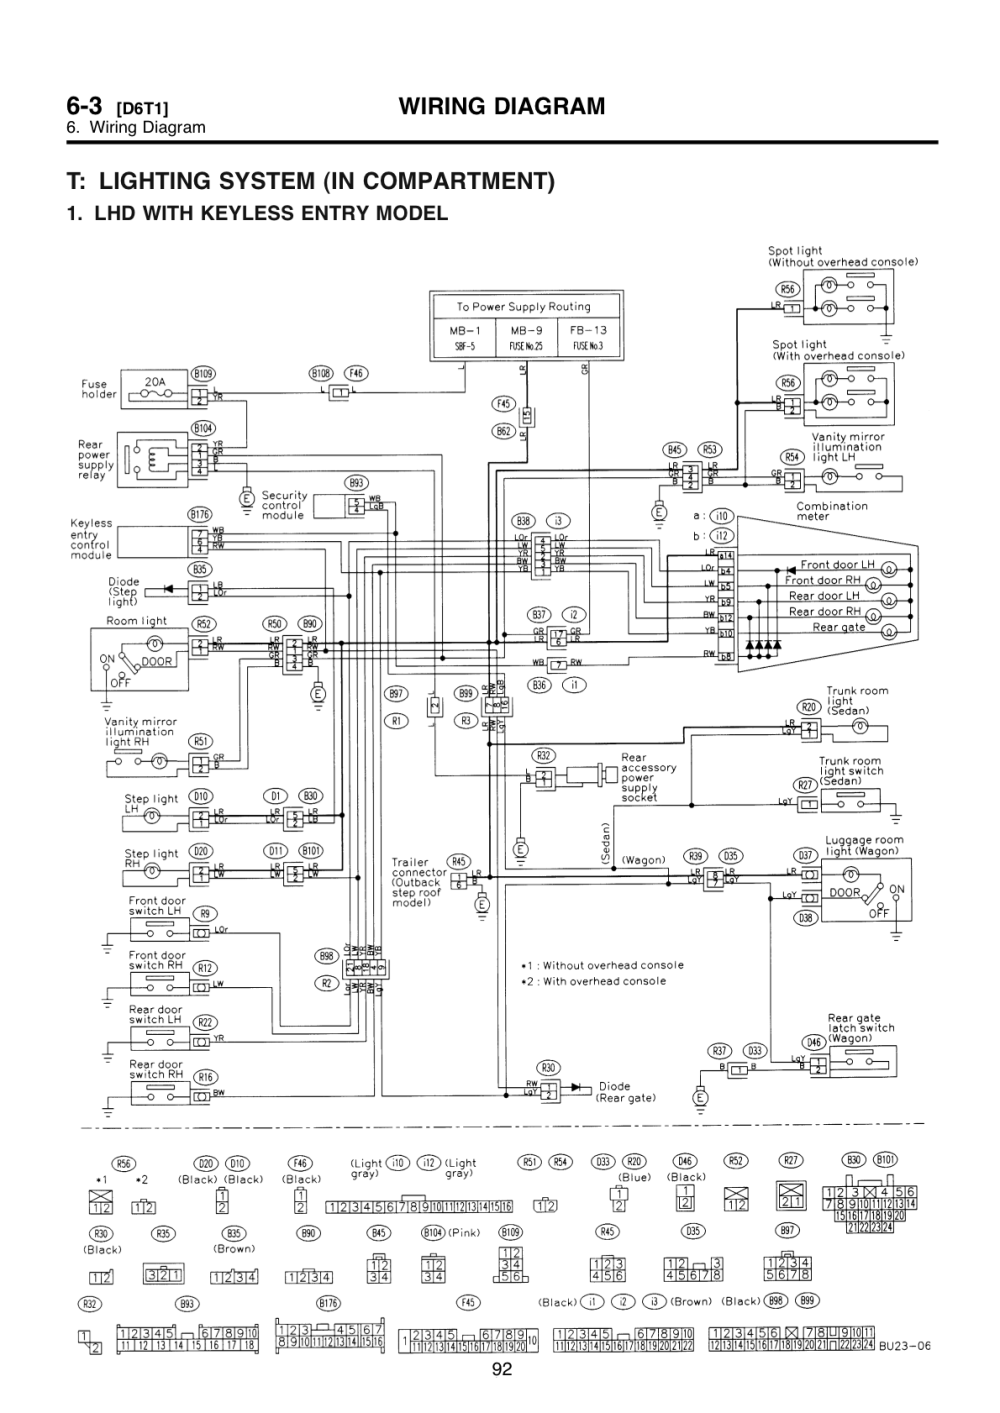 medium resolution of subaru impreza 1996 wiring harness diagram wiring library subaru impreza car 1997 subaru impreza stereo color wiring diagram